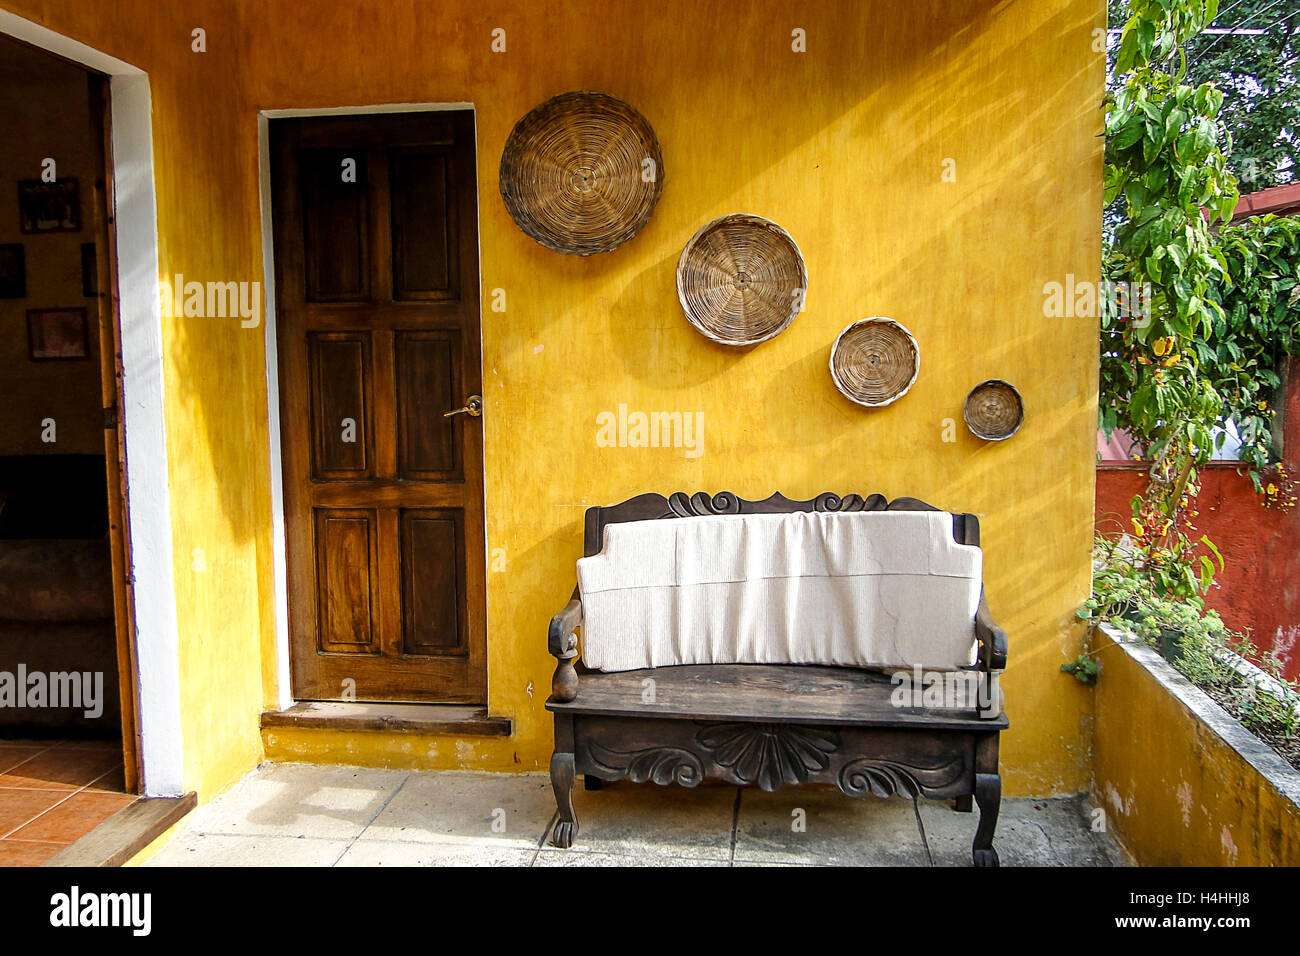 Hanging Plant In Guatemala Antigua Stock Photos & Hanging Plant In ...